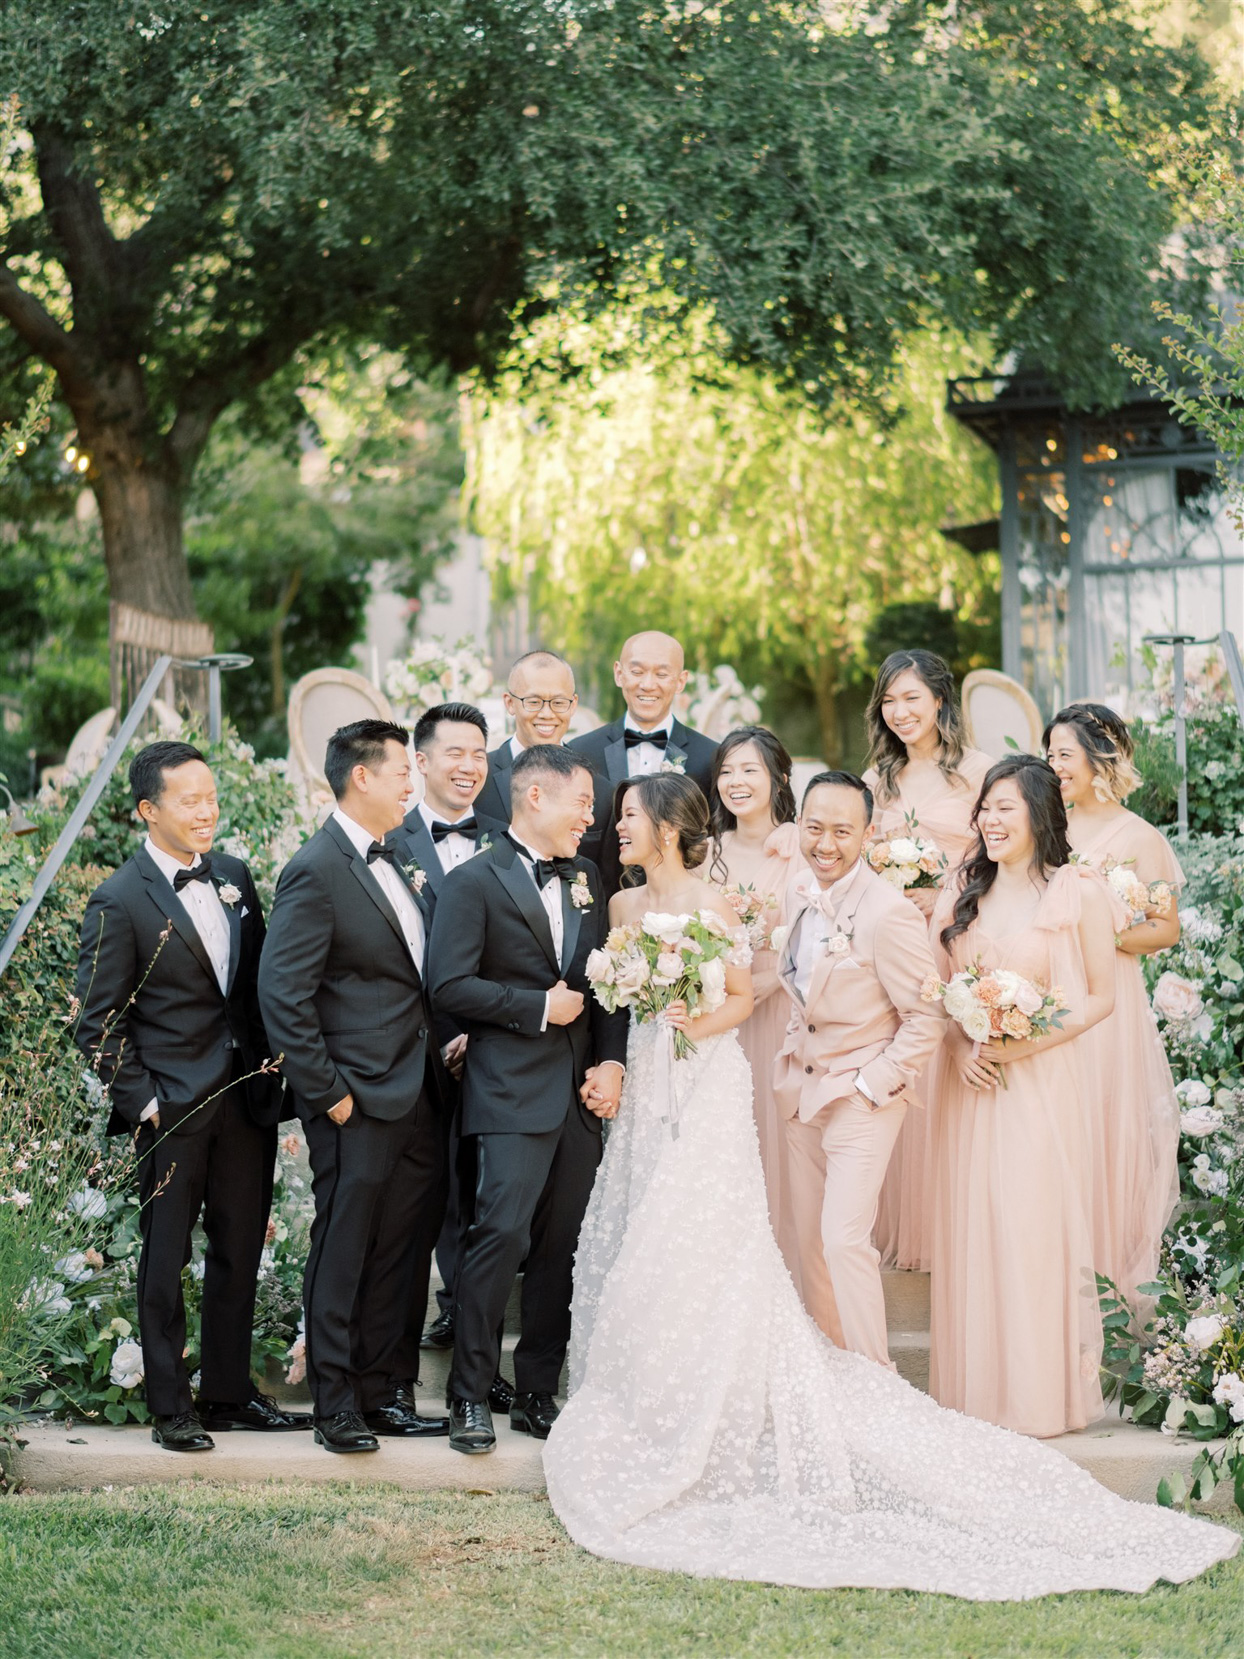 bride and groom surrounded by wedding party smiling outside